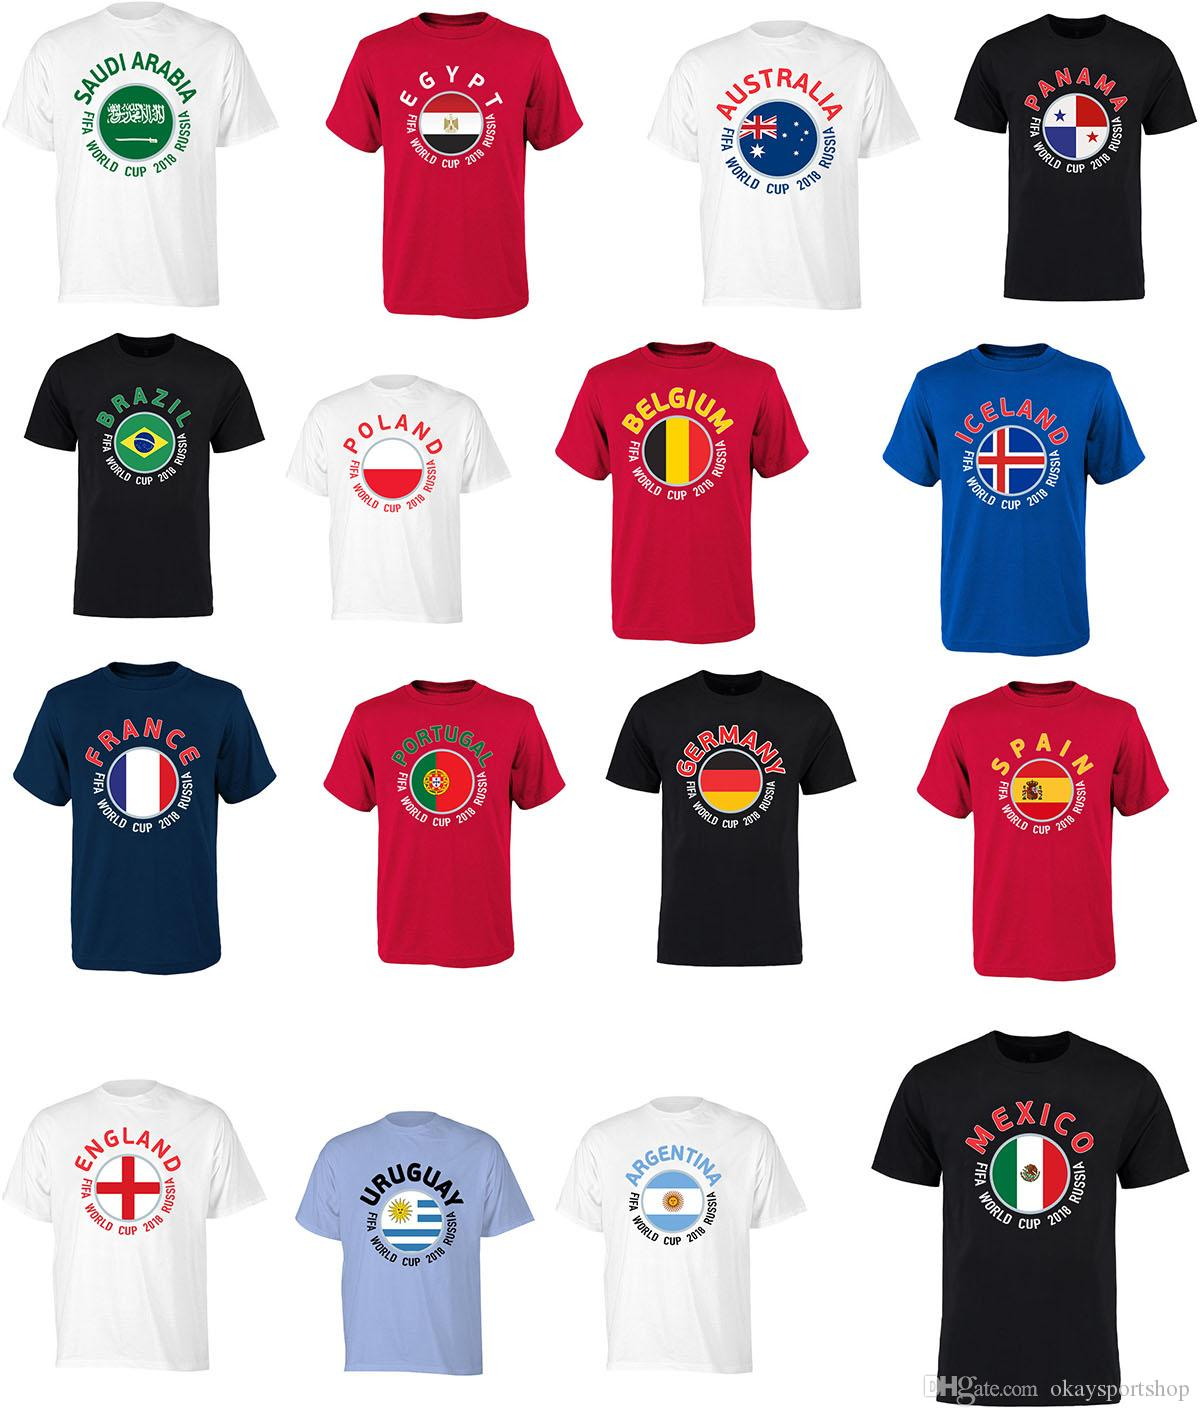 2f15b9d525c 2018 World Cup Soccer T Shirt 32 Country Team Slogan Football Fan Barzil  Spains Germany Portugal Iceland Serbia Egypt Panama Senegal T Shirt Online  T Shirts ...